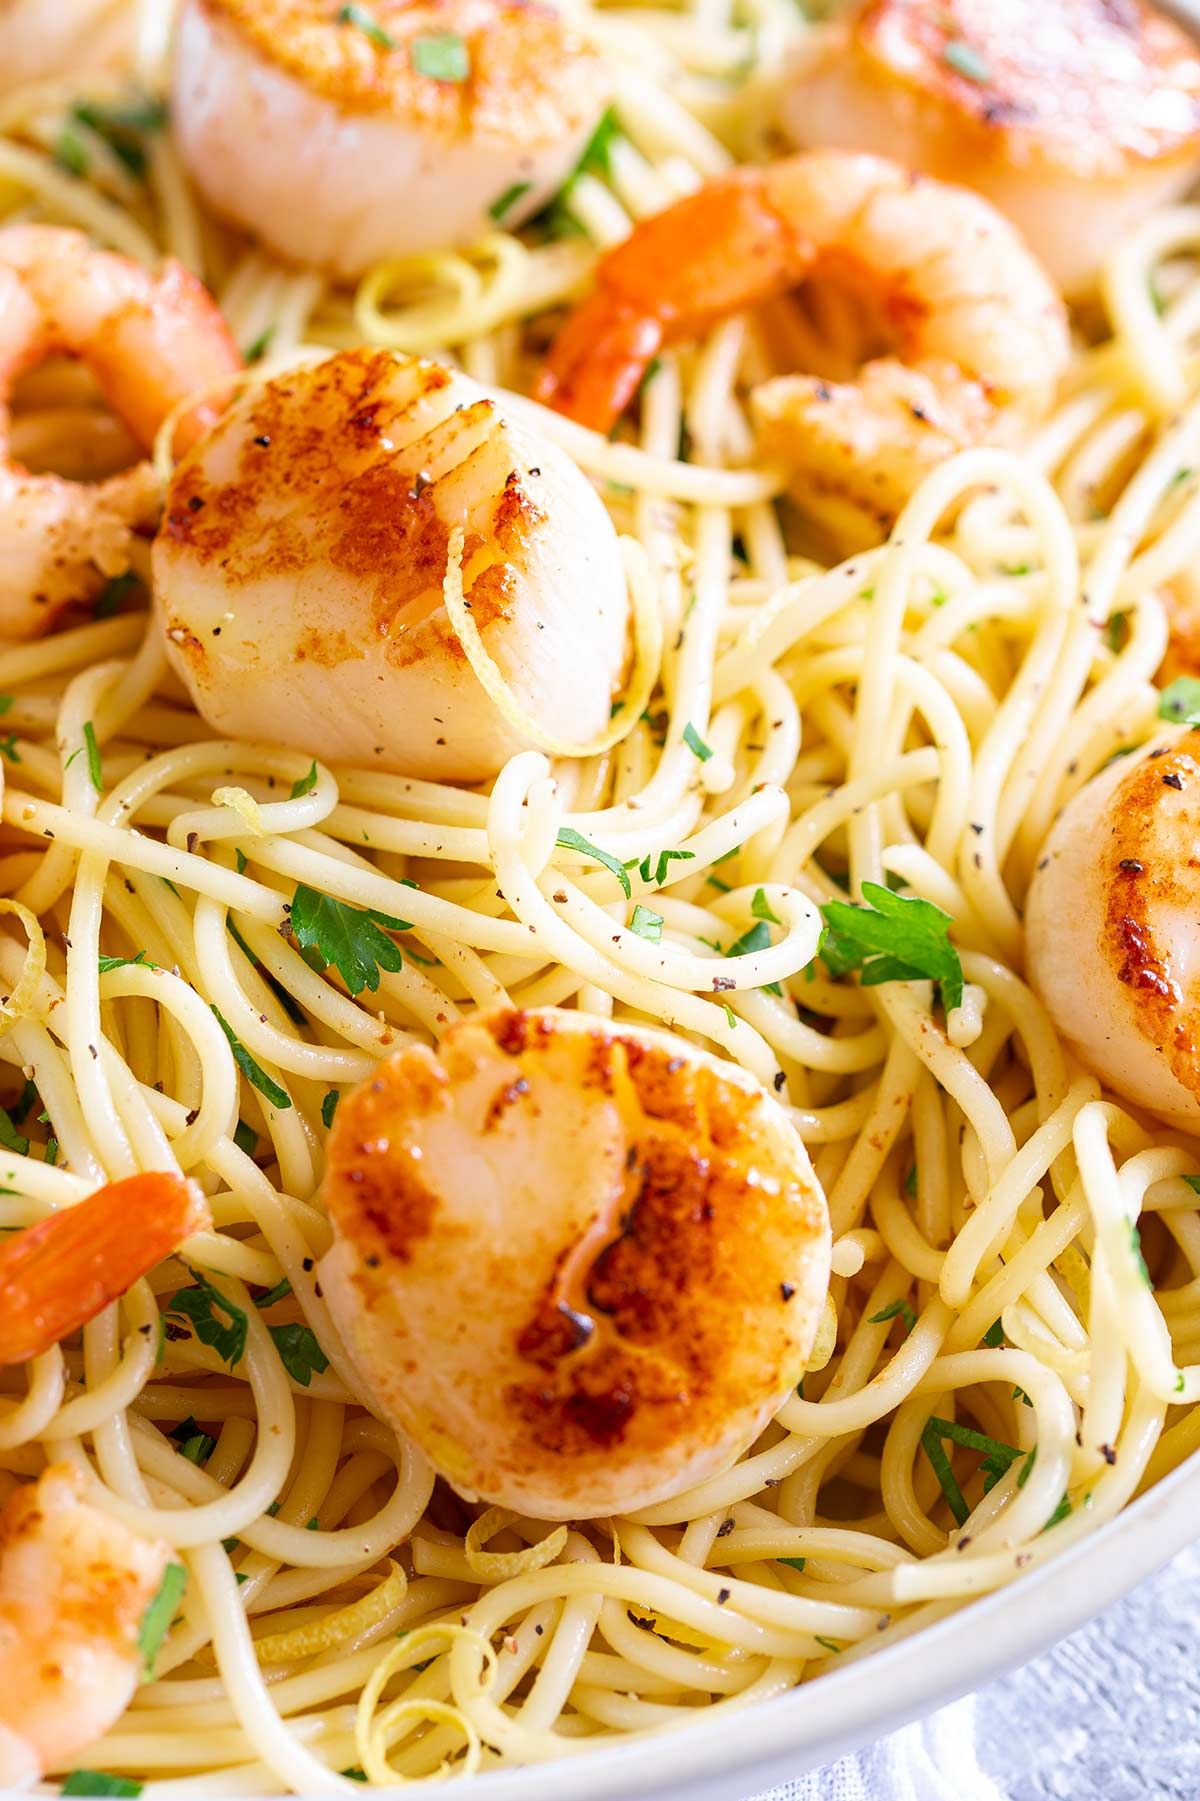 a seared scallop on a bed of garlic pasta